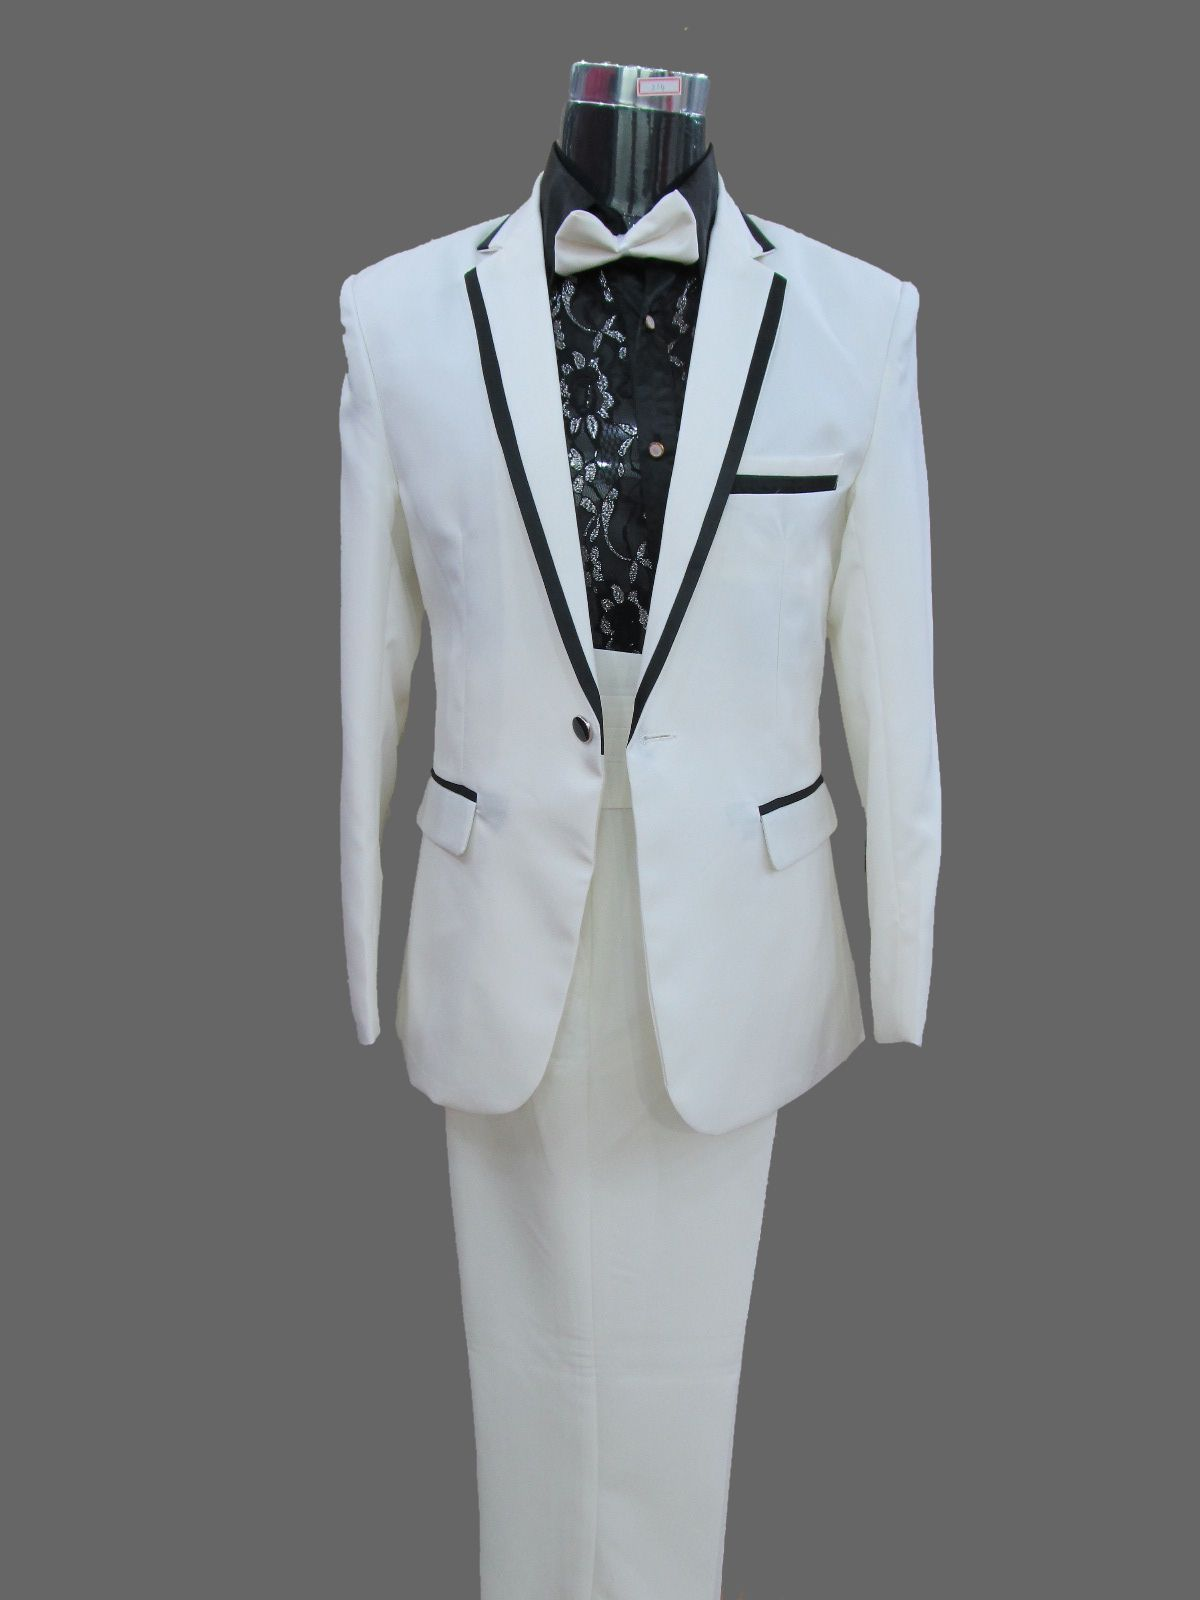 Wedding Tuxedos for Groom | Tuxedo and groom dress costumes dress ...